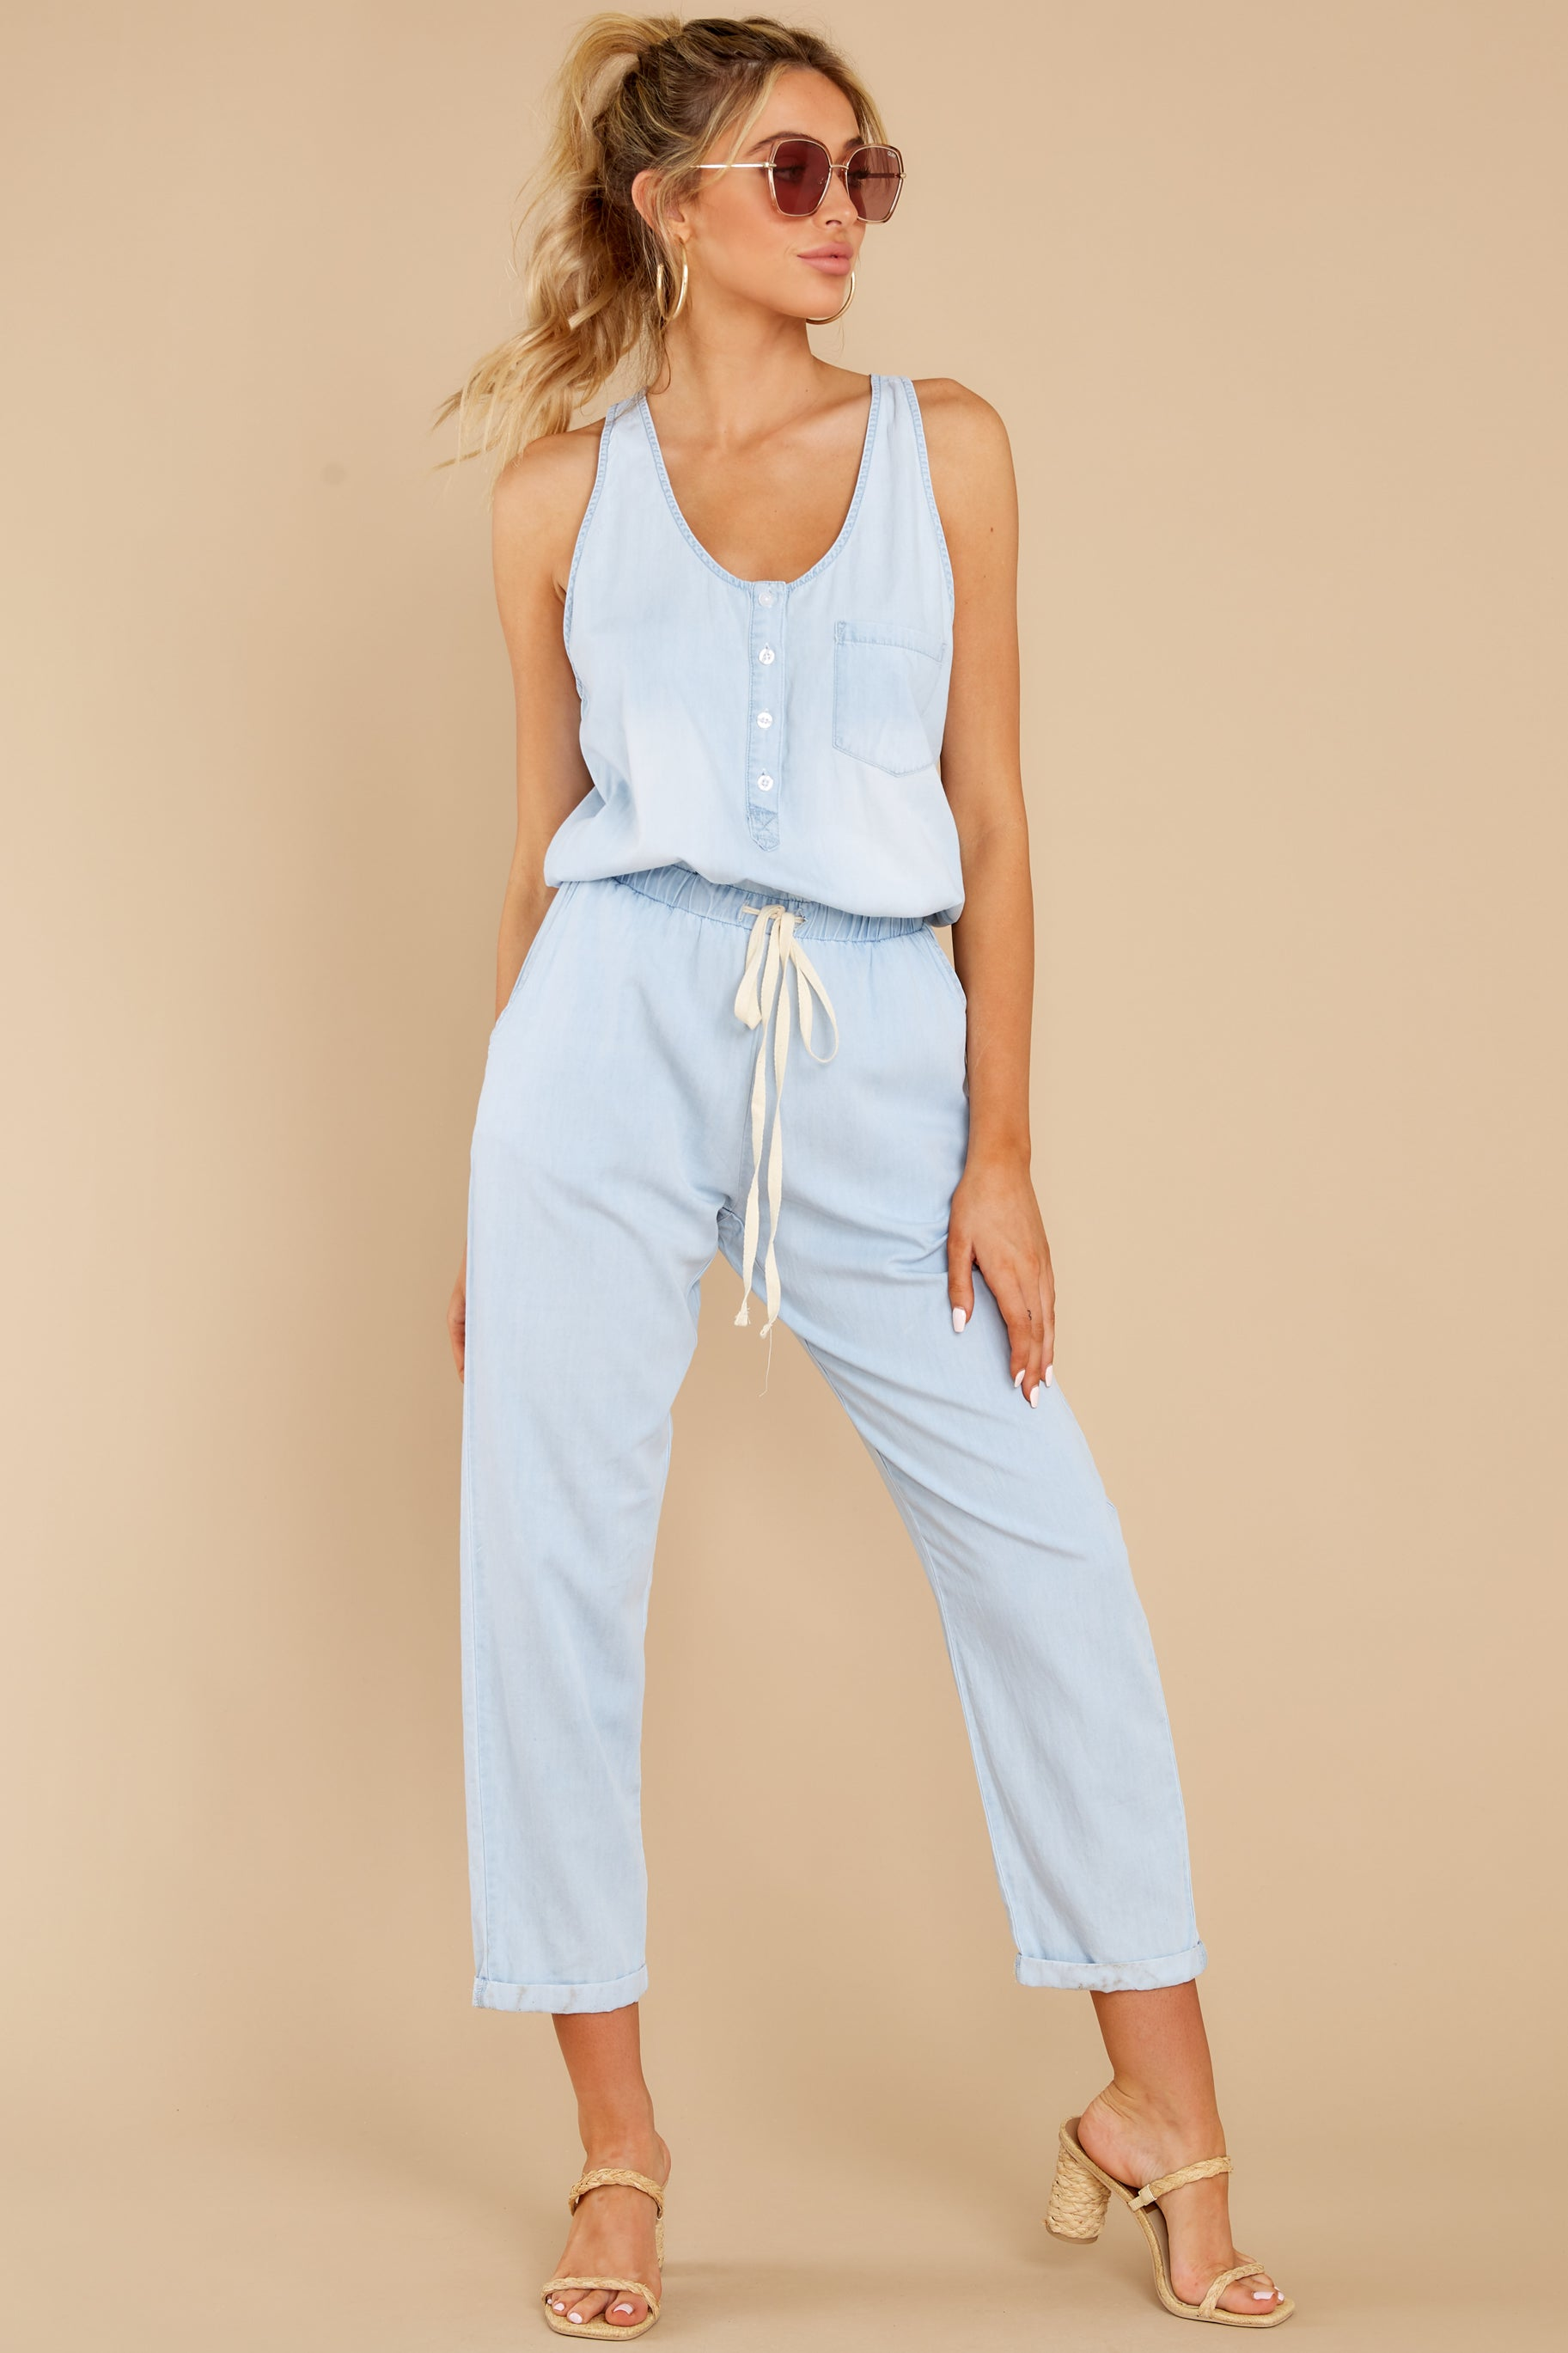 2 Play It Back Light Wash Chambray Jumpsuit at reddress.com